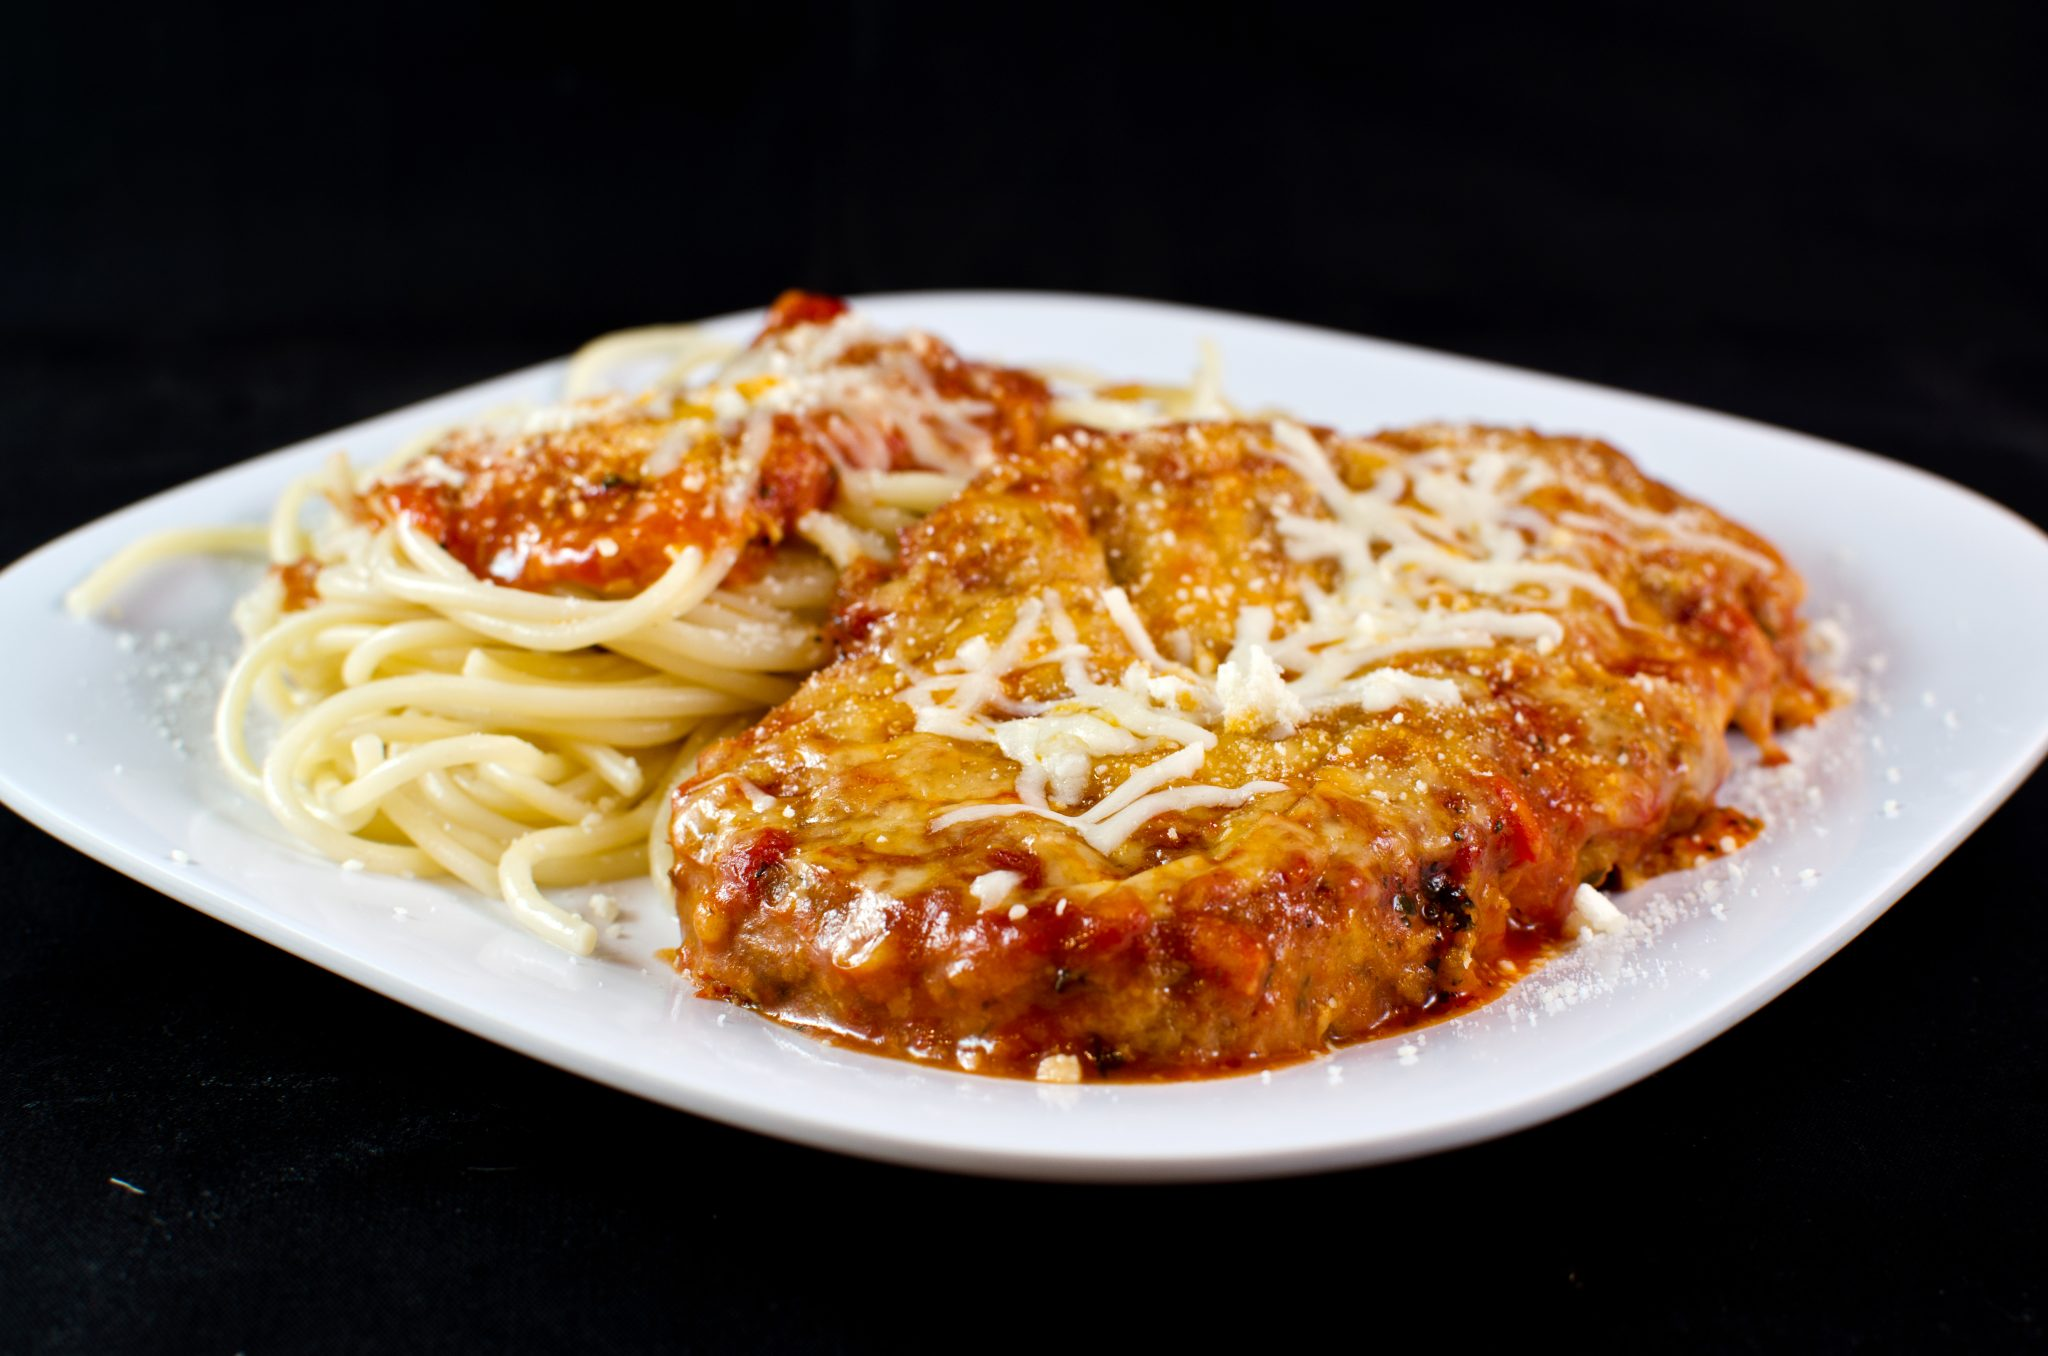 Eggplant Parmesan - This eggplant parmesan is a delicious simple breaded eggplant, covered in sauce and cheese served with pasta for a delicious vegetarian meal option!